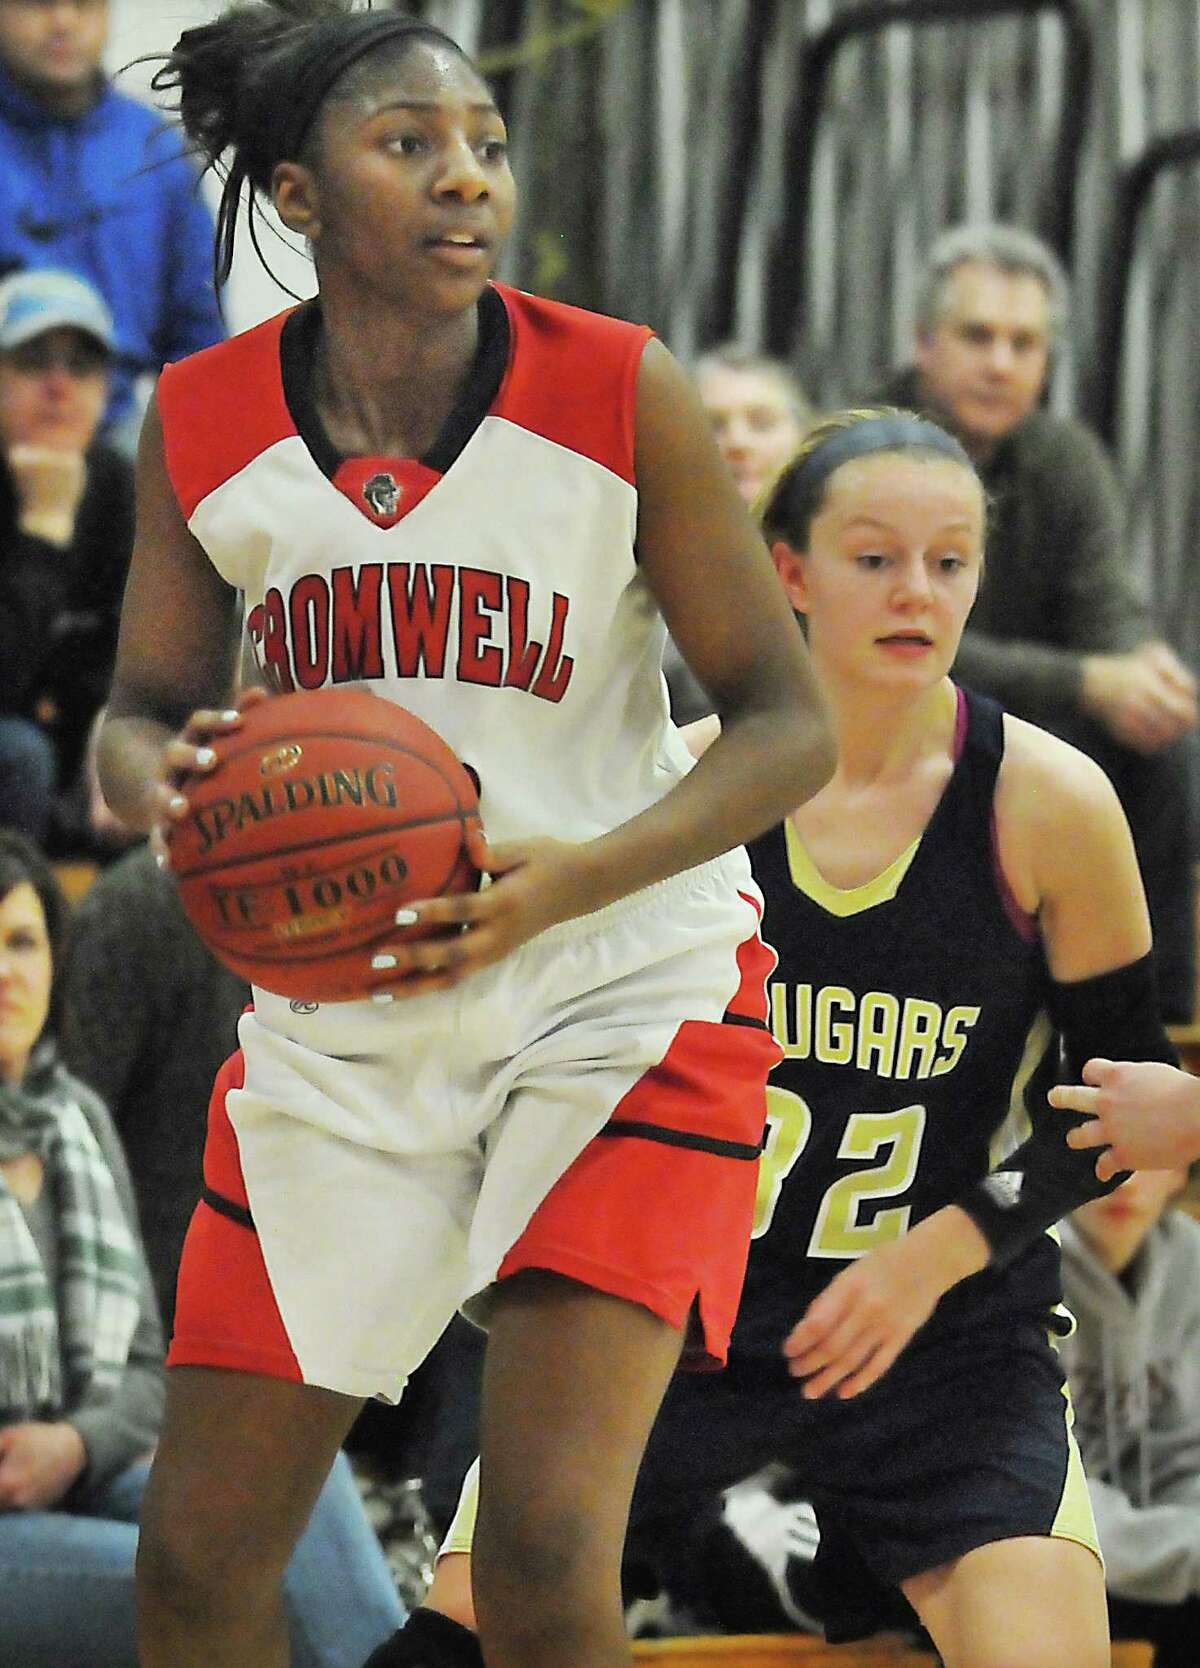 Cromwell senior forward Janelle Harrison looks to make a pass Monday night in Cromwell. Harrison put 10 points on the board for the Panthers defeating the Haddam-Killingworth Cougars 65-51.